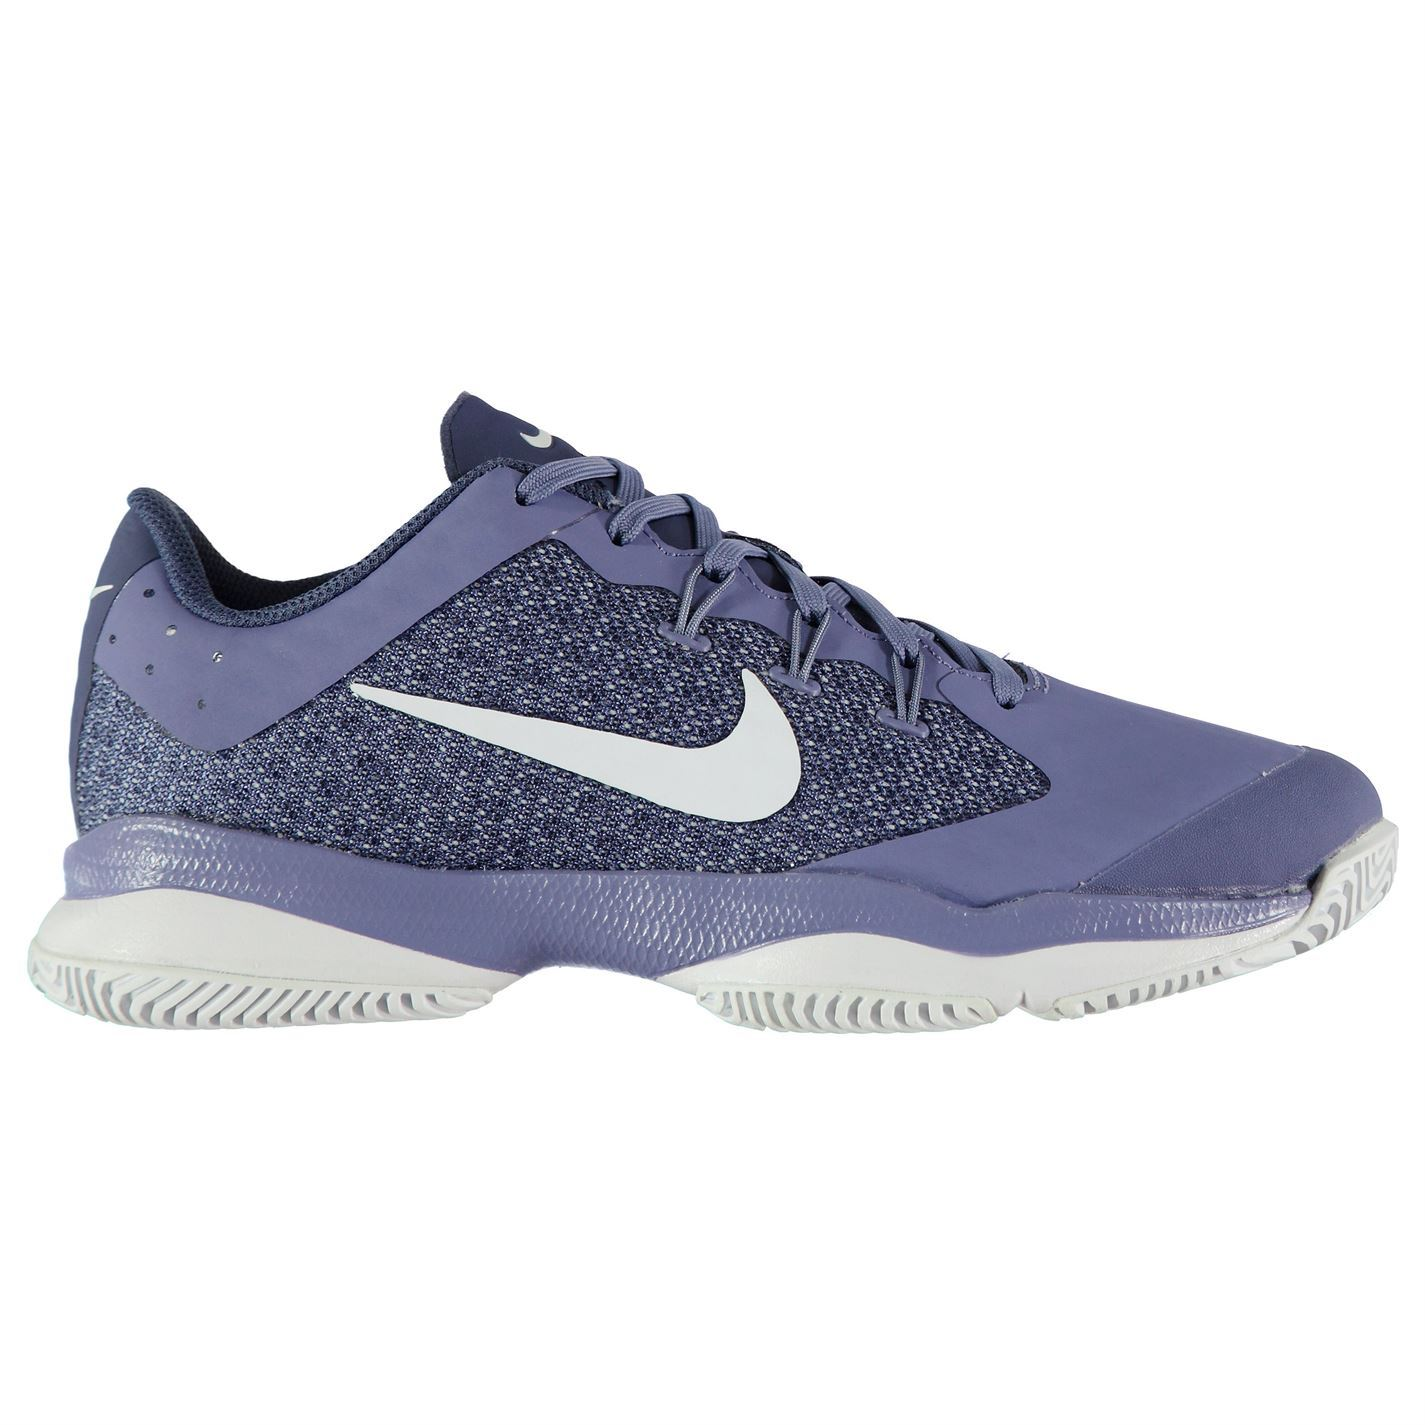 brand new 32afe e1562 Details about Nike Air Zoom Ultra Tennis Shoes Womens PurpleWhite Court  Trainers Sneakers